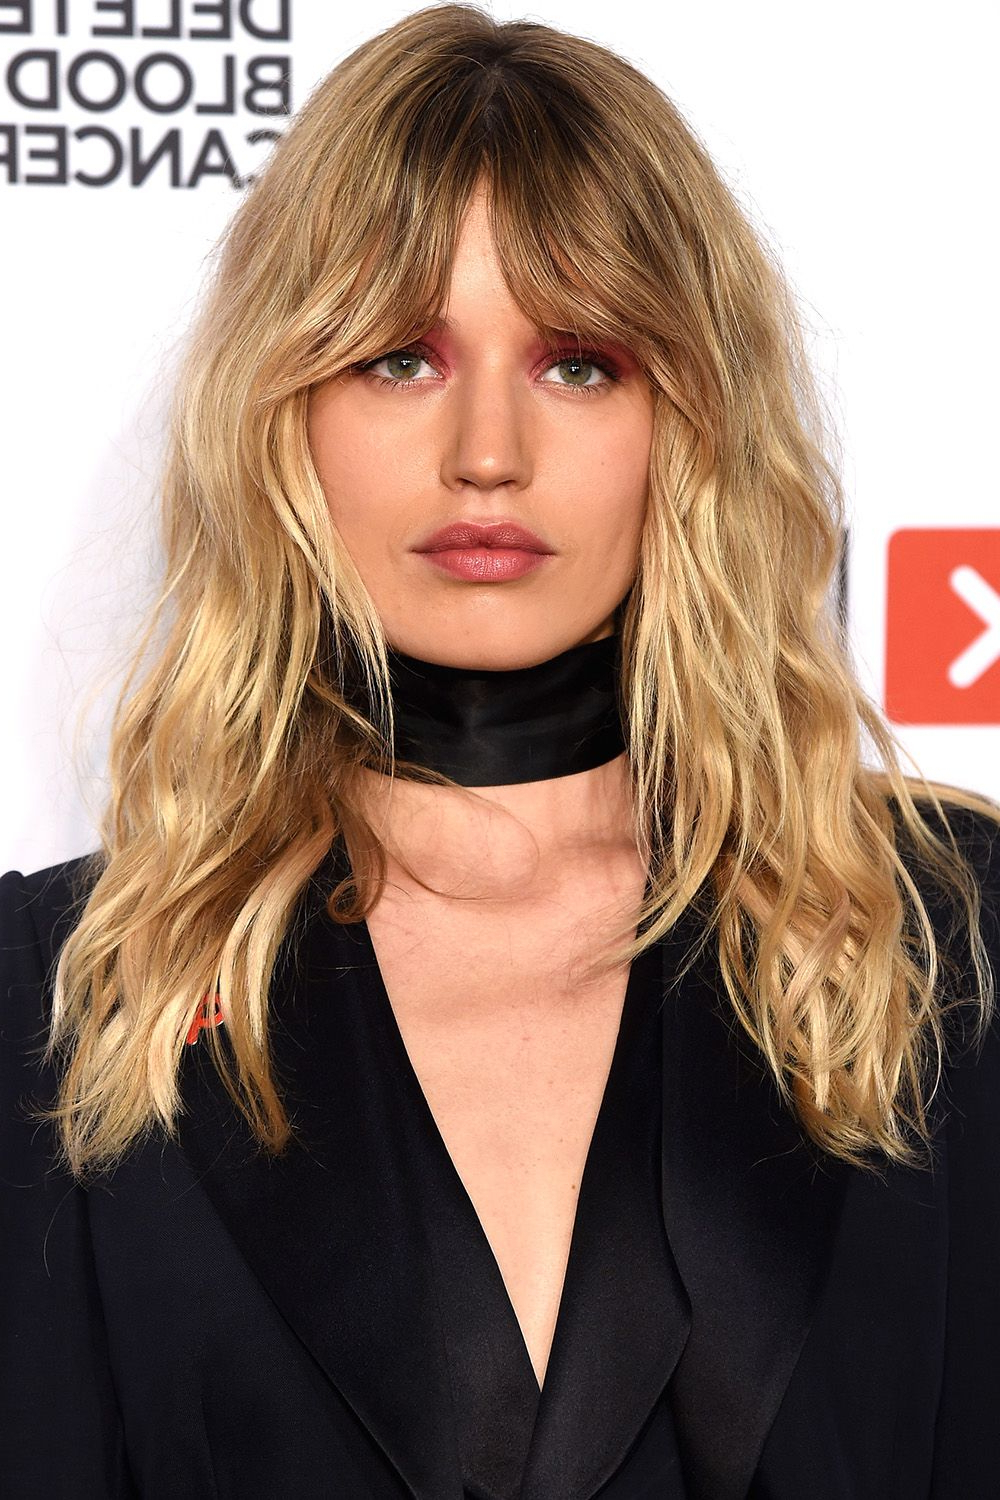 40 Best Medium Hairstyles – Celebrities With Shoulder Length Haircuts Regarding Most Recent Celebrity Medium Haircuts (View 3 of 20)